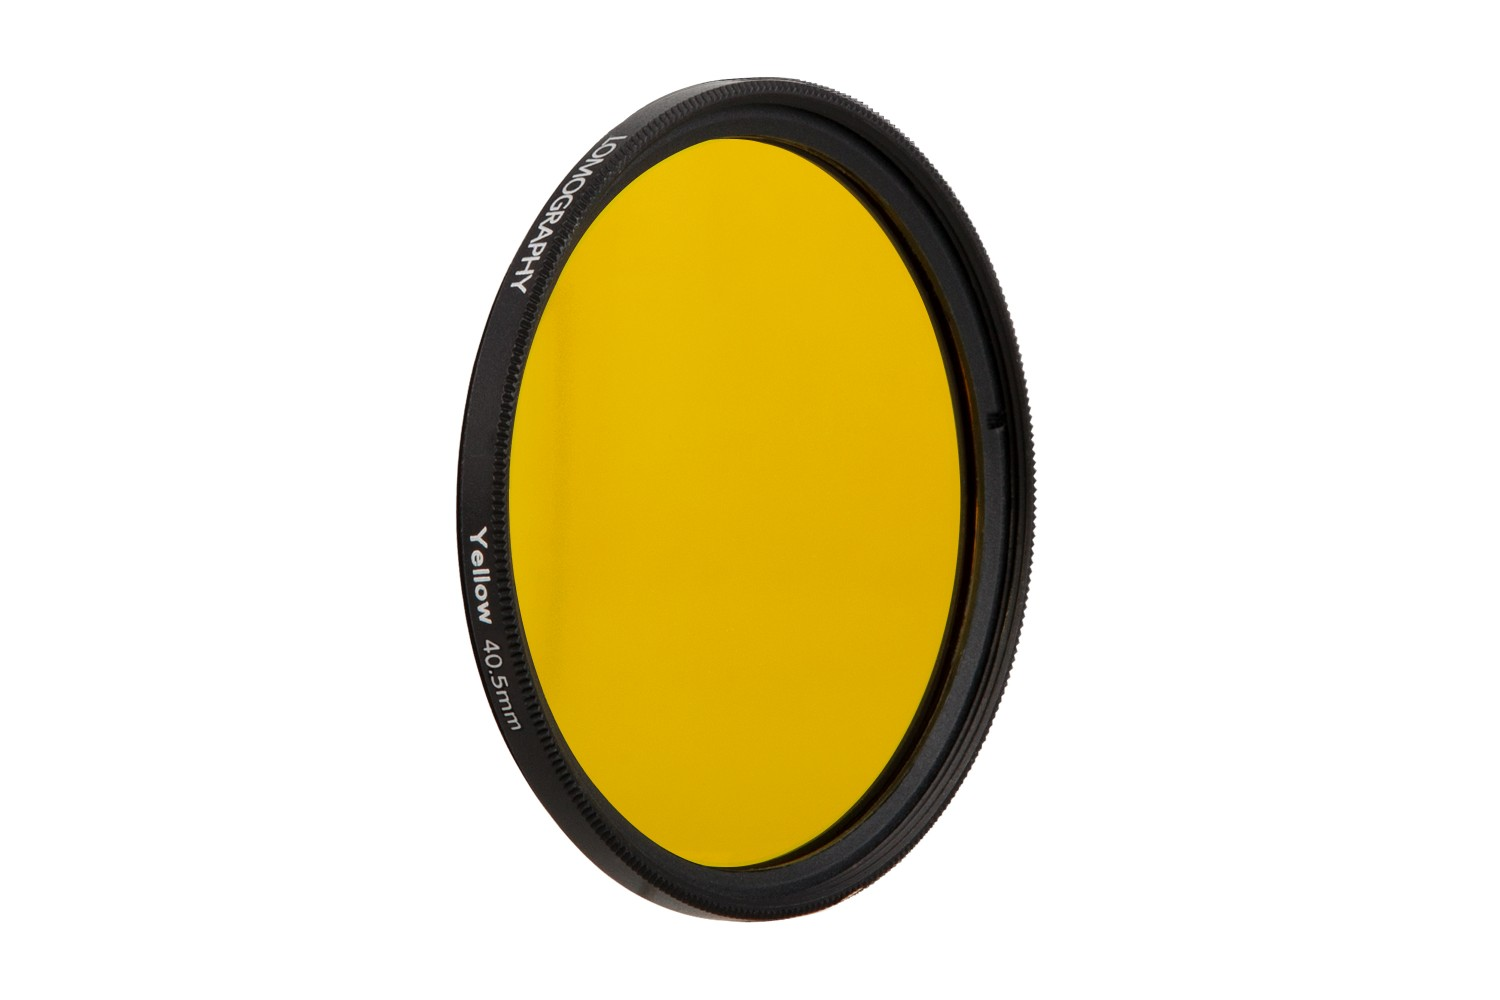 Lomography 40.5mm Lens Filter - Yellow